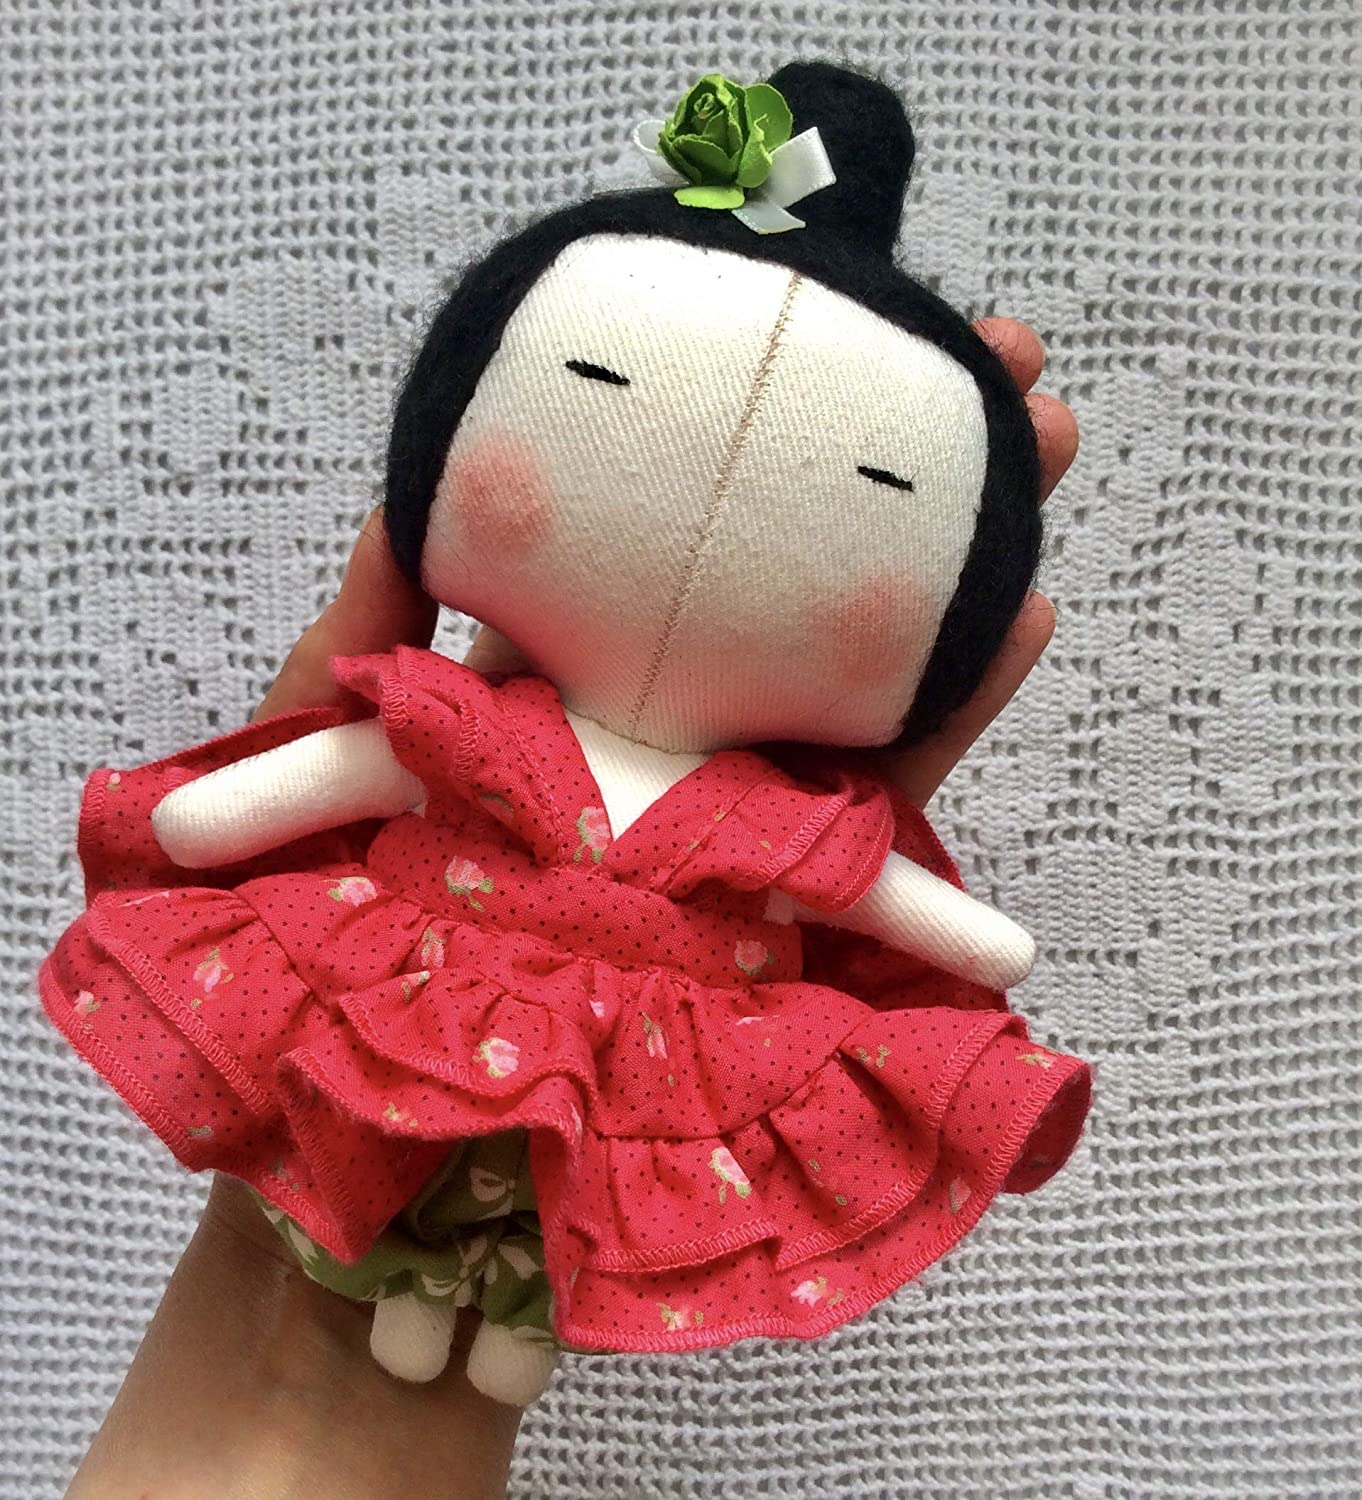 Tilda Sweetheart Baby Doll Tildas Toy Box Rag doll Textile doll Handmade Gift for daughter Cloth doll Girl toy kids room decor fabric doll